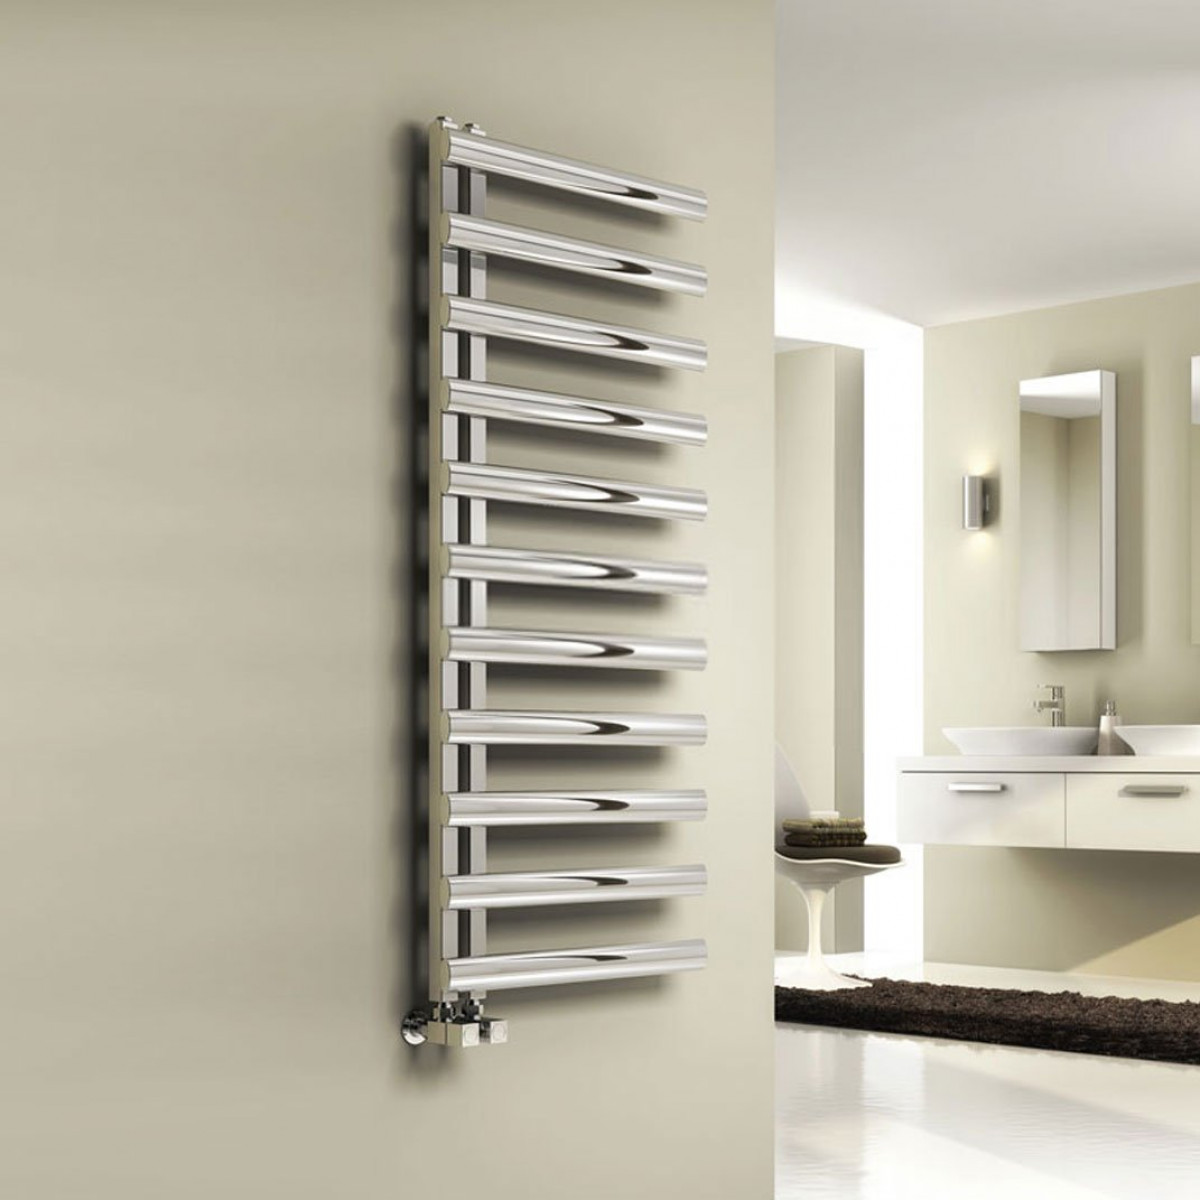 Stainless Steel Heated Towel Rail Radiator: Reina Cavo Stainless Steel Towel Radiator 880 X 500mm